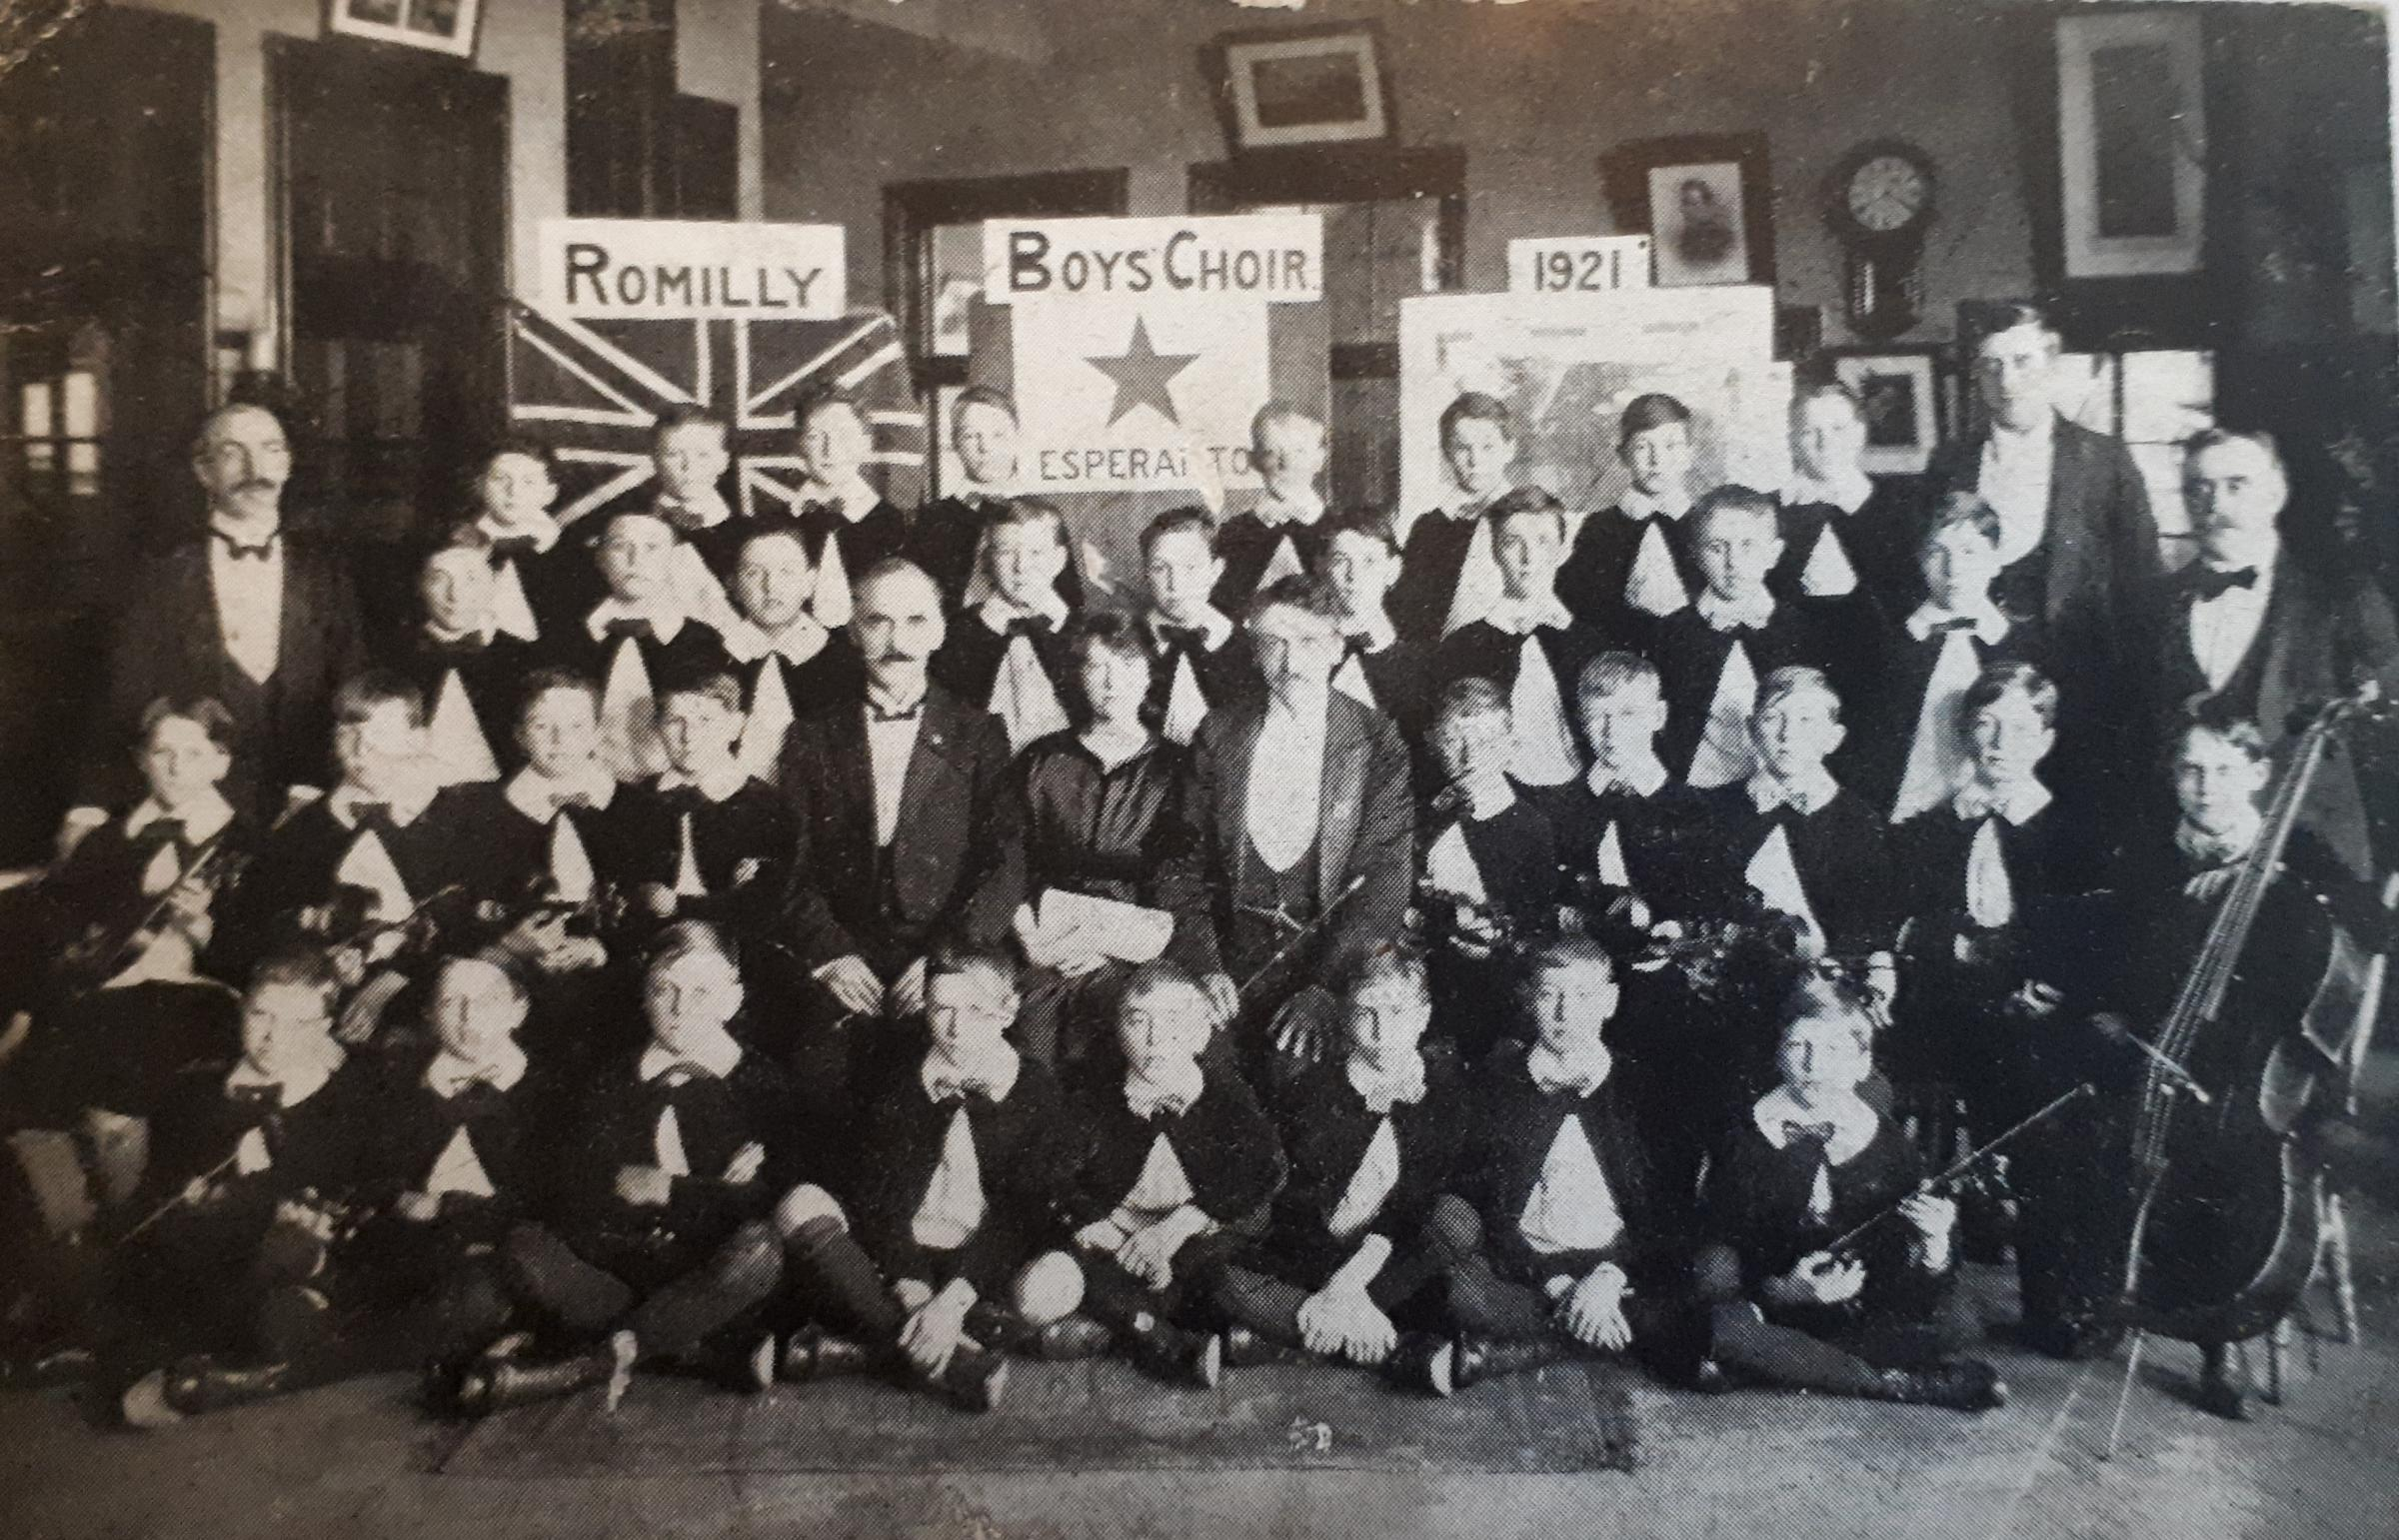 From the Archive: Romilly School Boys Choir goes on tour